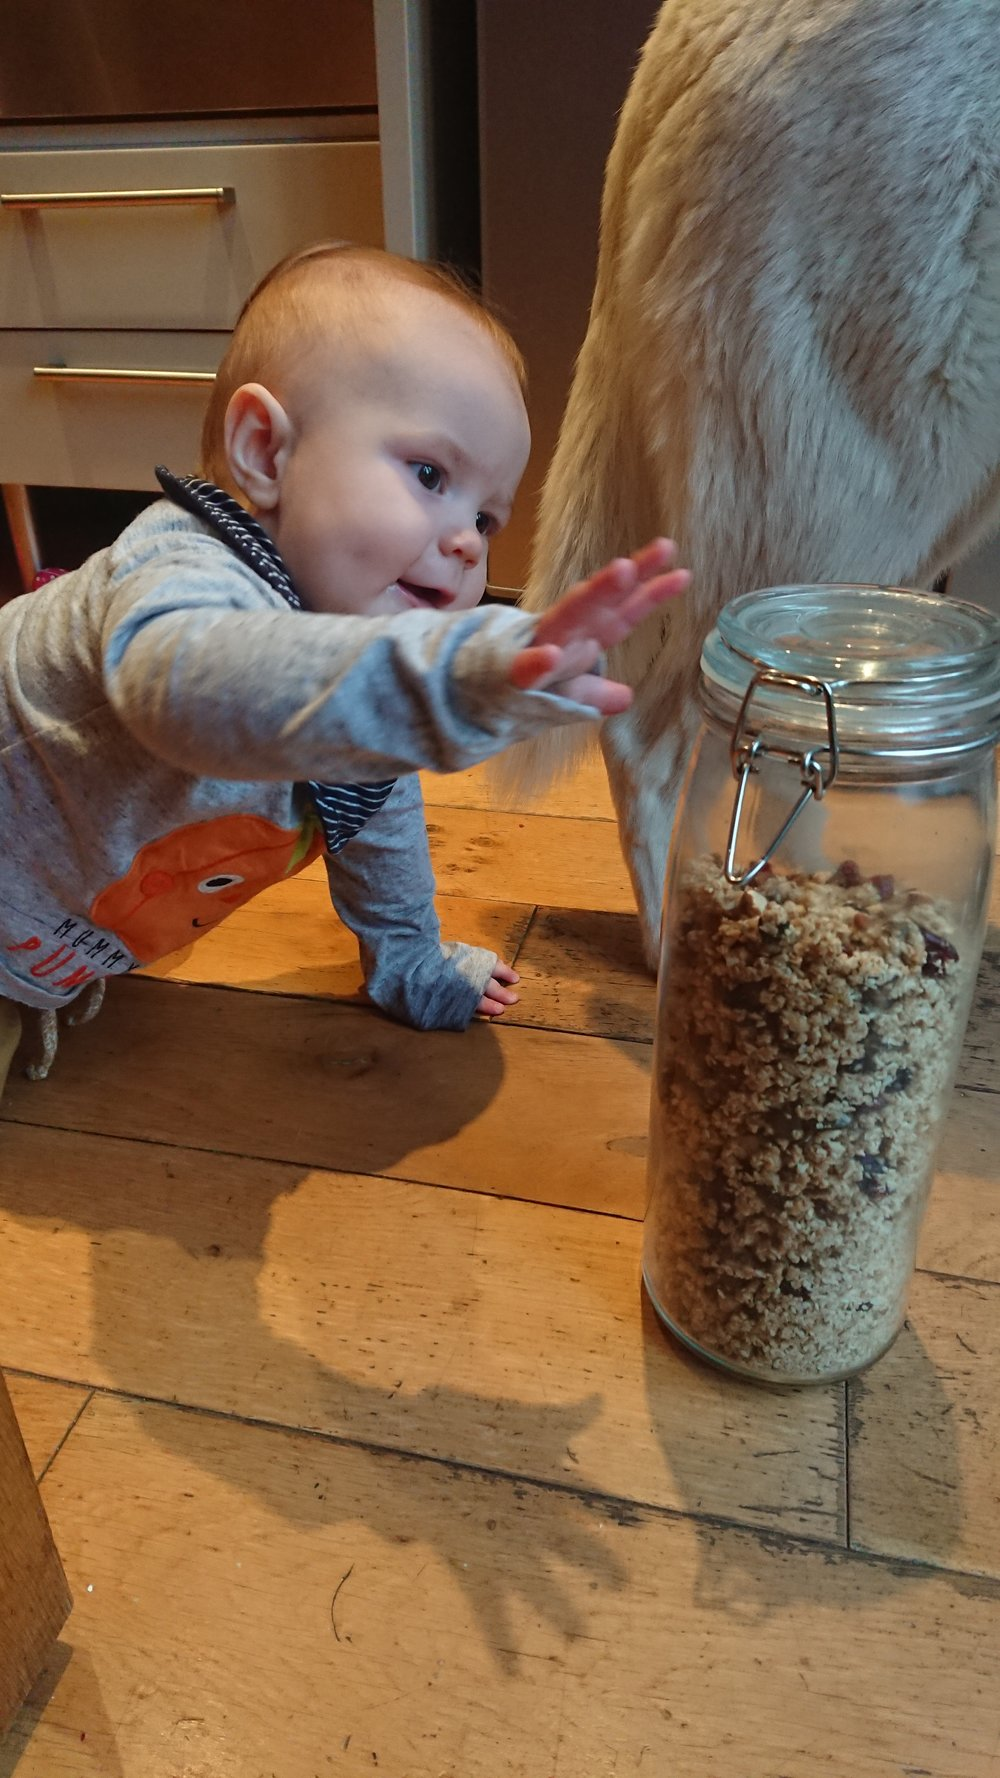 Granola so tasty my tiny son will try to steal it despite the wolf-guard.